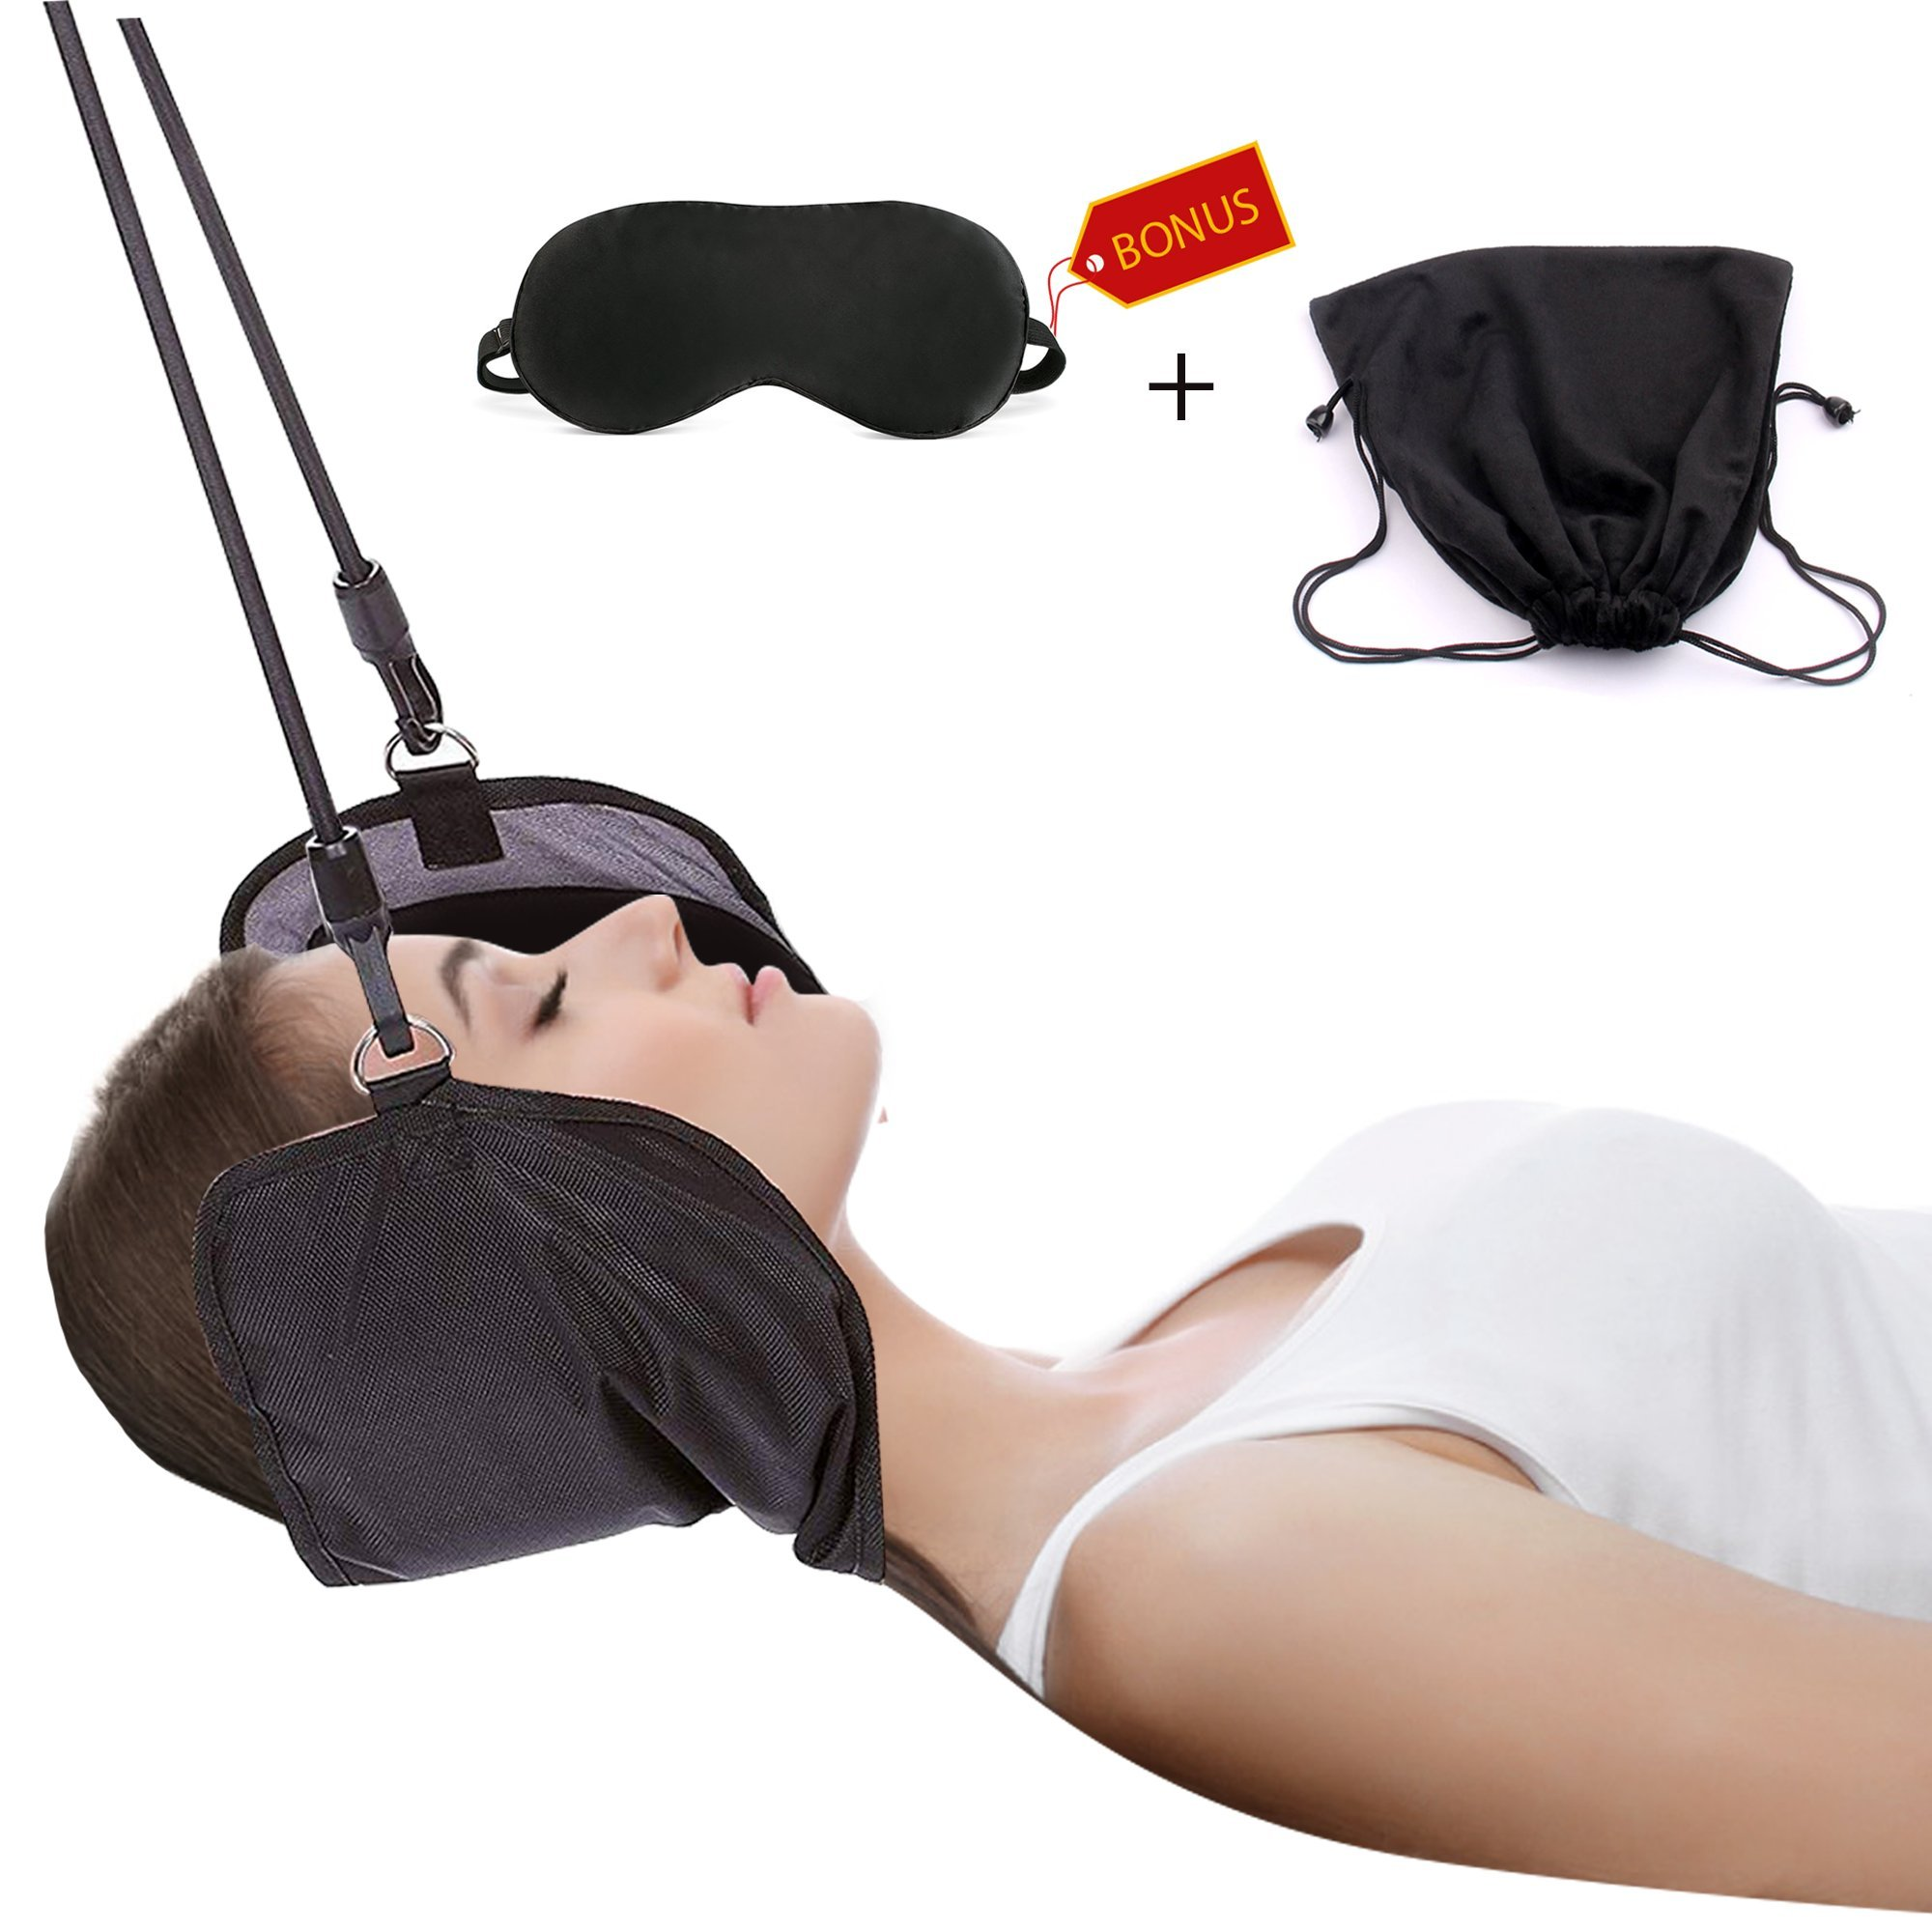 Hammock for Neck by ENXICO - Portable Neck Stretcher Cervical Traction Device | Rapidly Neck Pain Relief | Perfect for Your Stiff Neck and Shoulders + 3D Eye MASK Gift